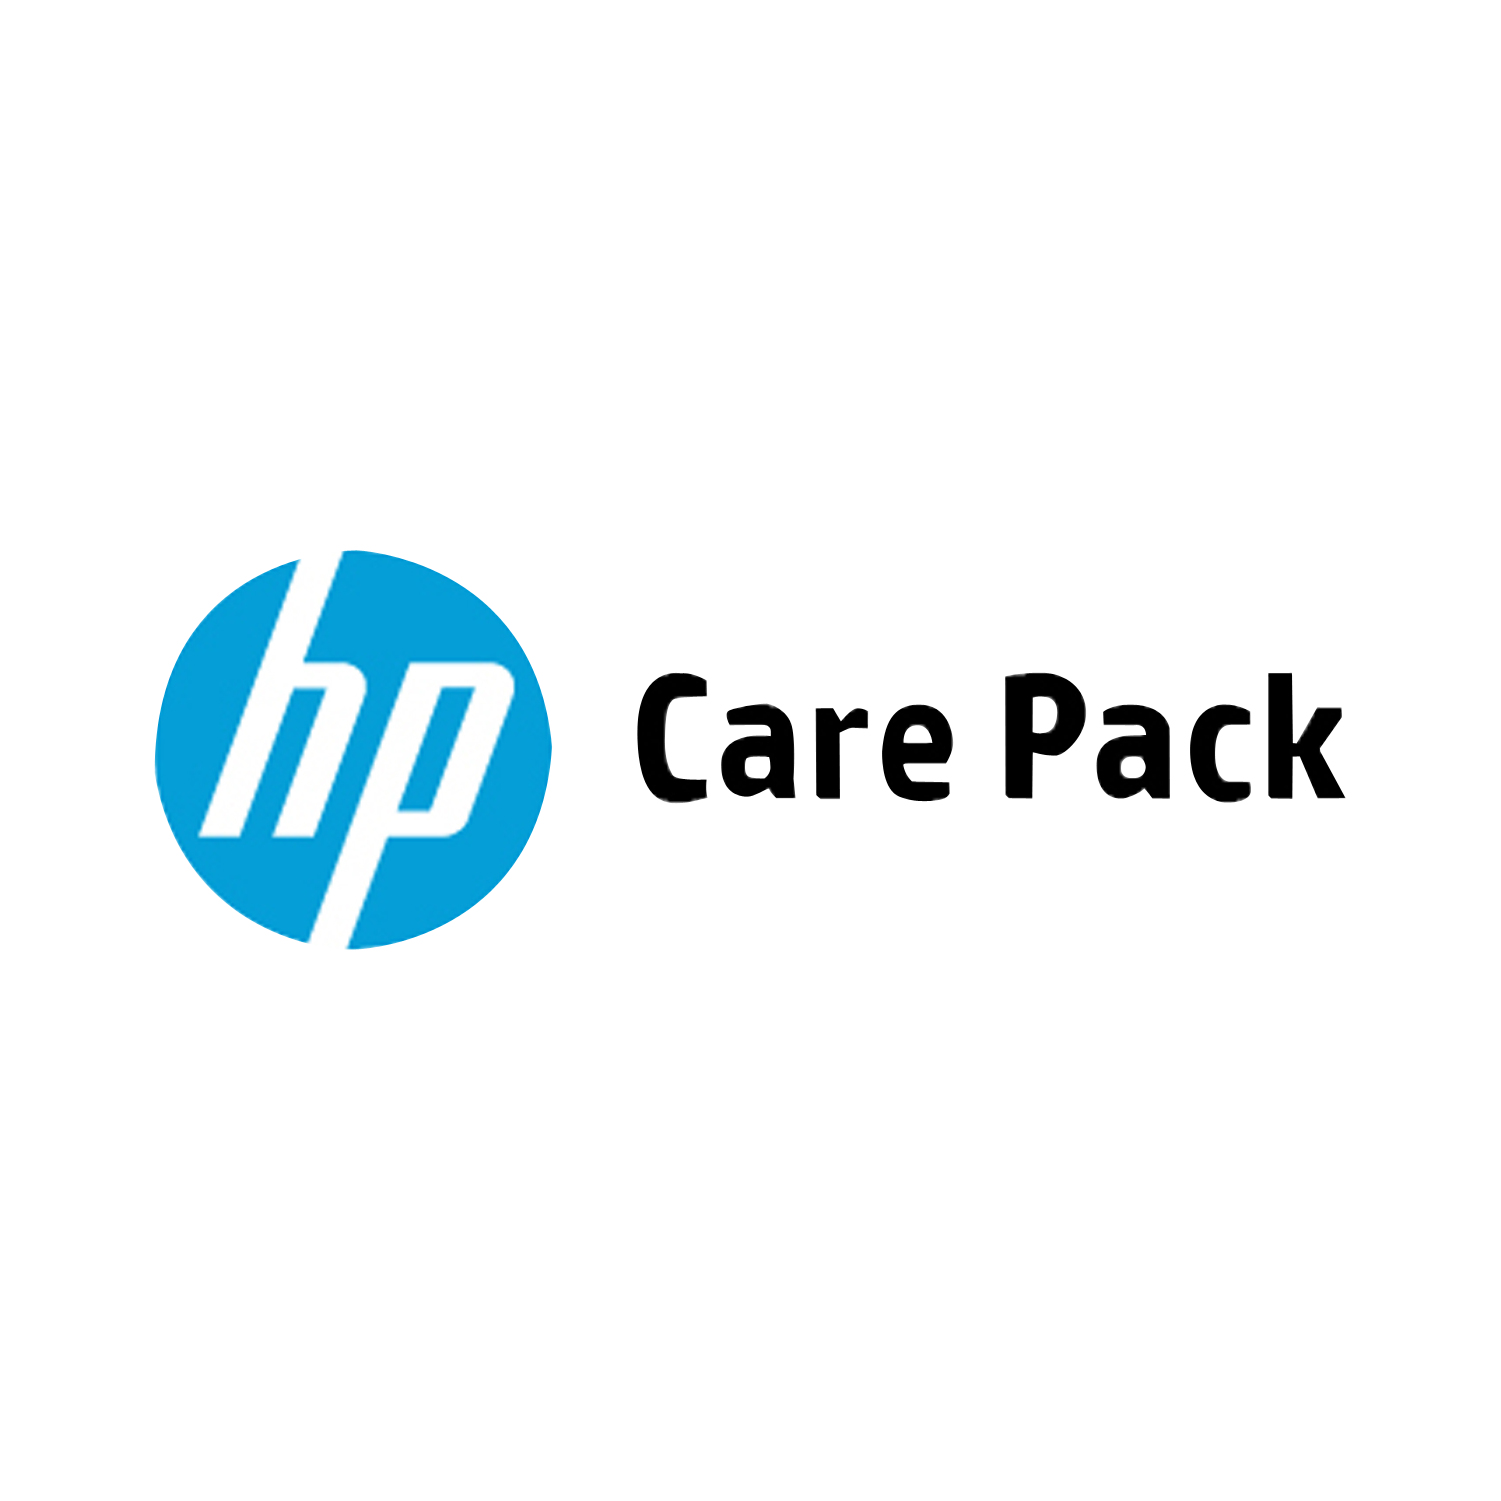 HP Carepack Ntwk Install DesignJet Win/MacSVC 8-9xxx,Desgnjt1-5xxx,mf P, Install 1  Network Config For HP DesignJet Network Printer,per Event,per Product Tech  Datasheet,Std Bus H,d, Excl HP  - C2000